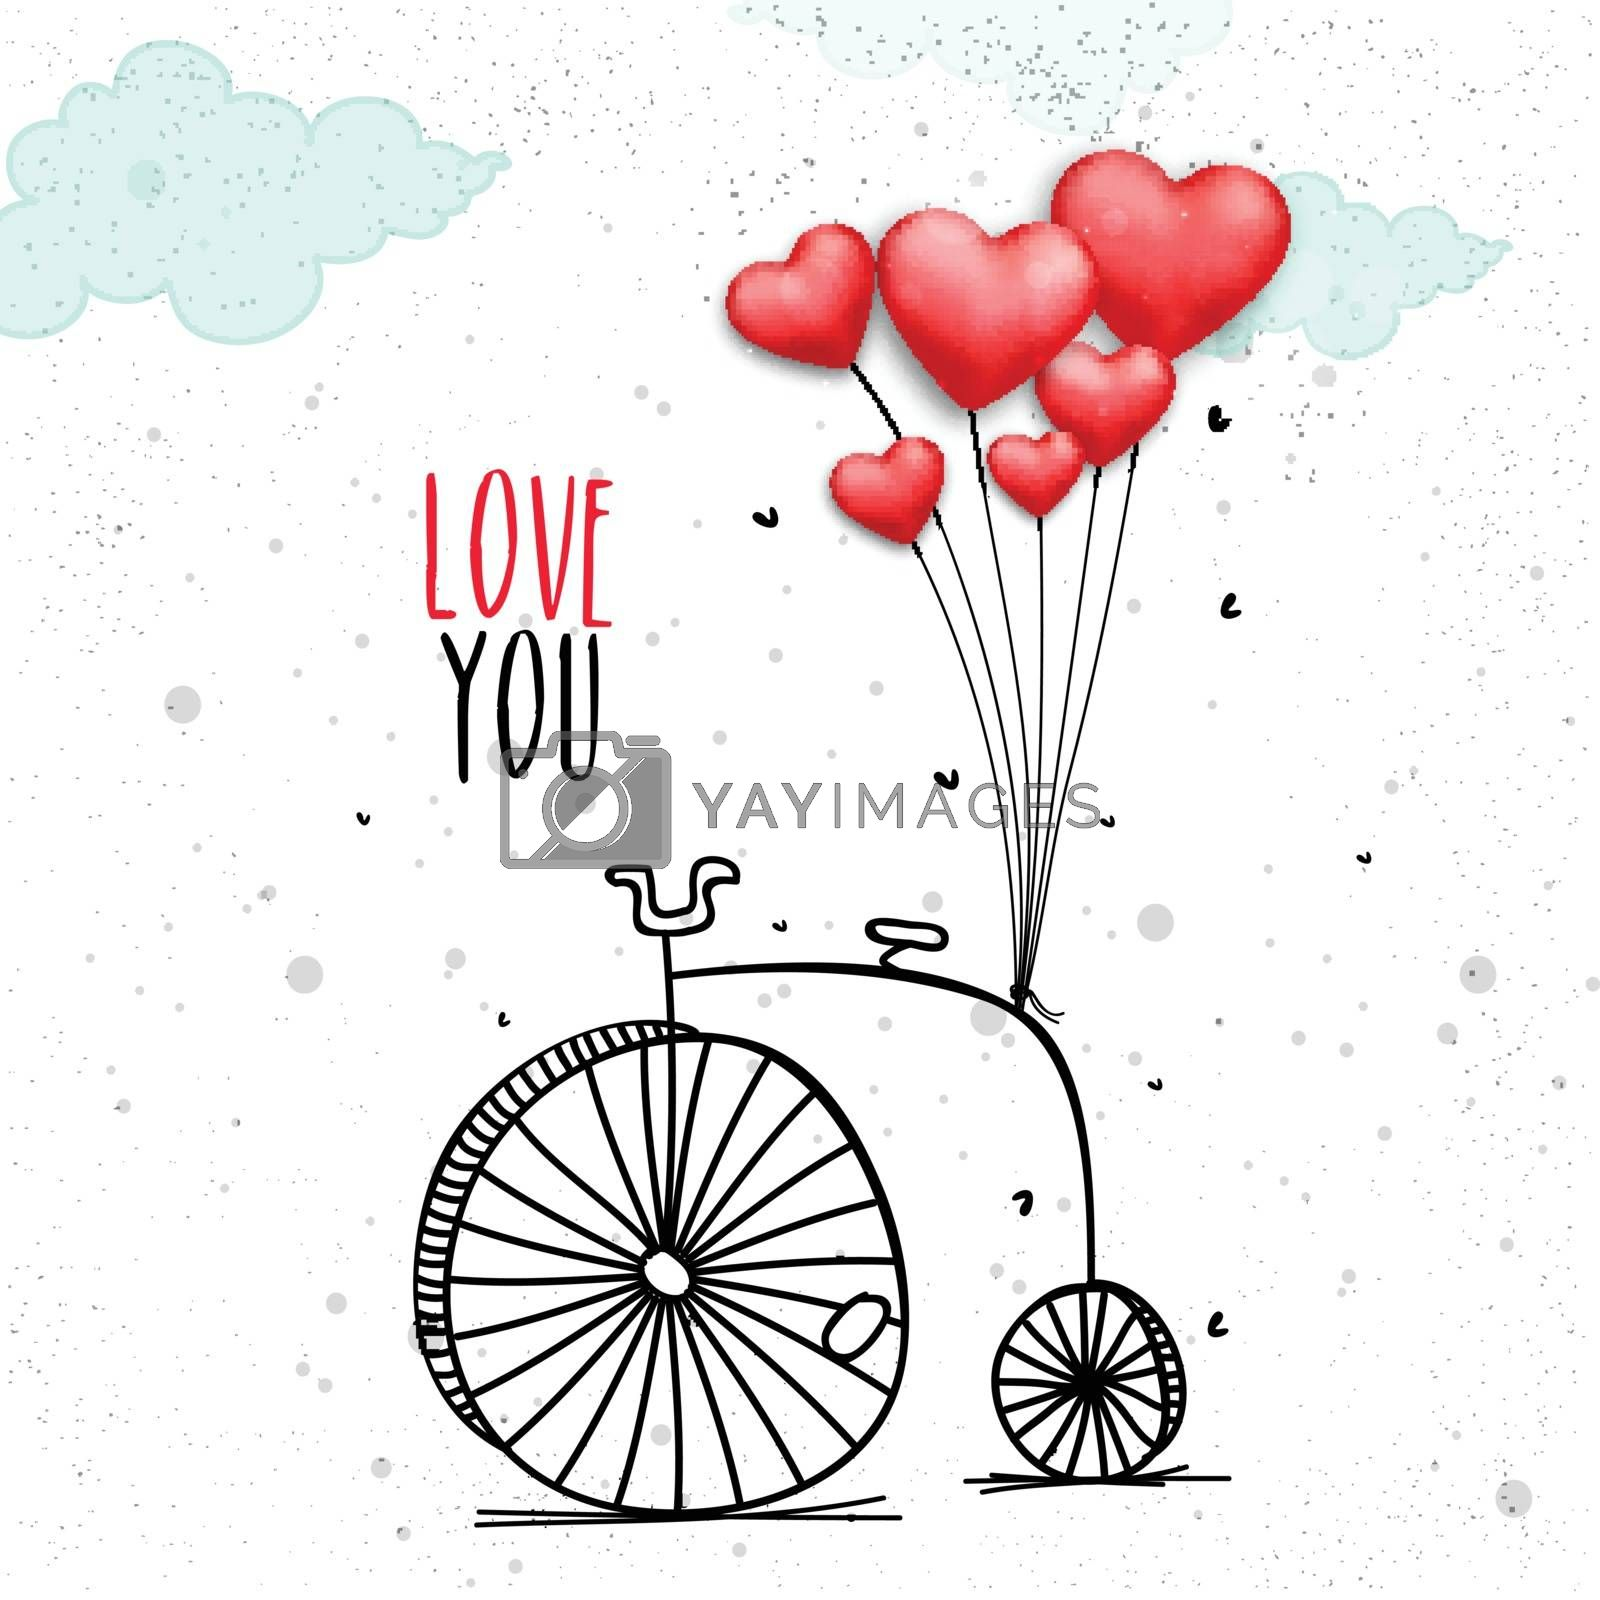 Red Heart shaped Balloons binding on Penny Farthing Bicycle. Creative illustration for Happy Valentine's Day celebration or Love concept.